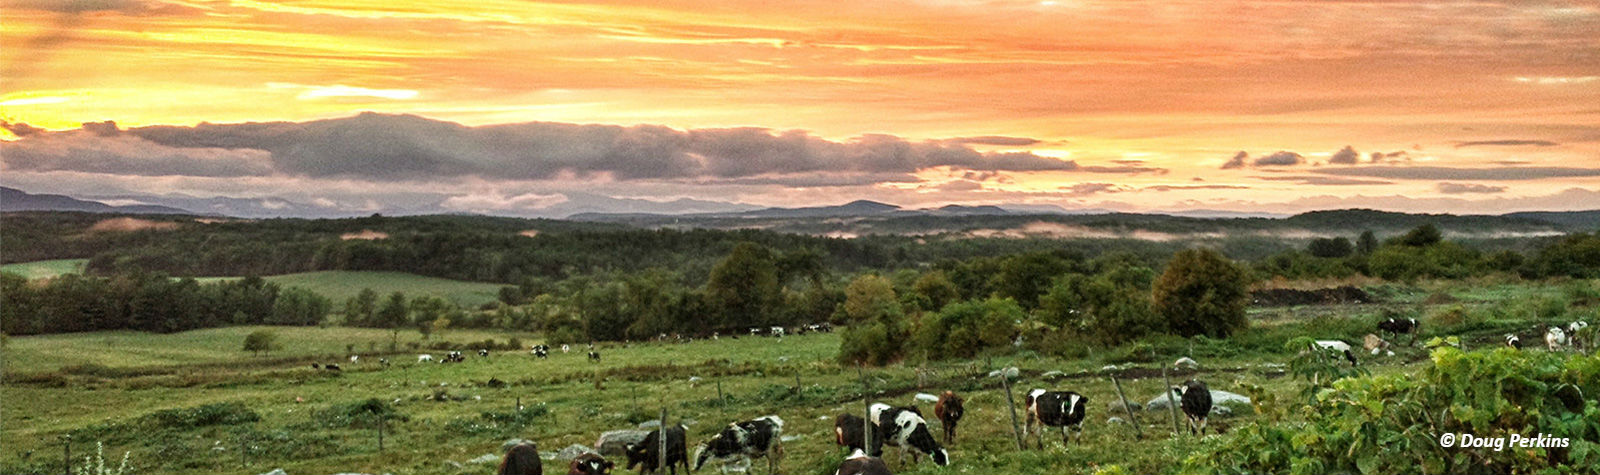 Cows_and_Sunset_2.jpg